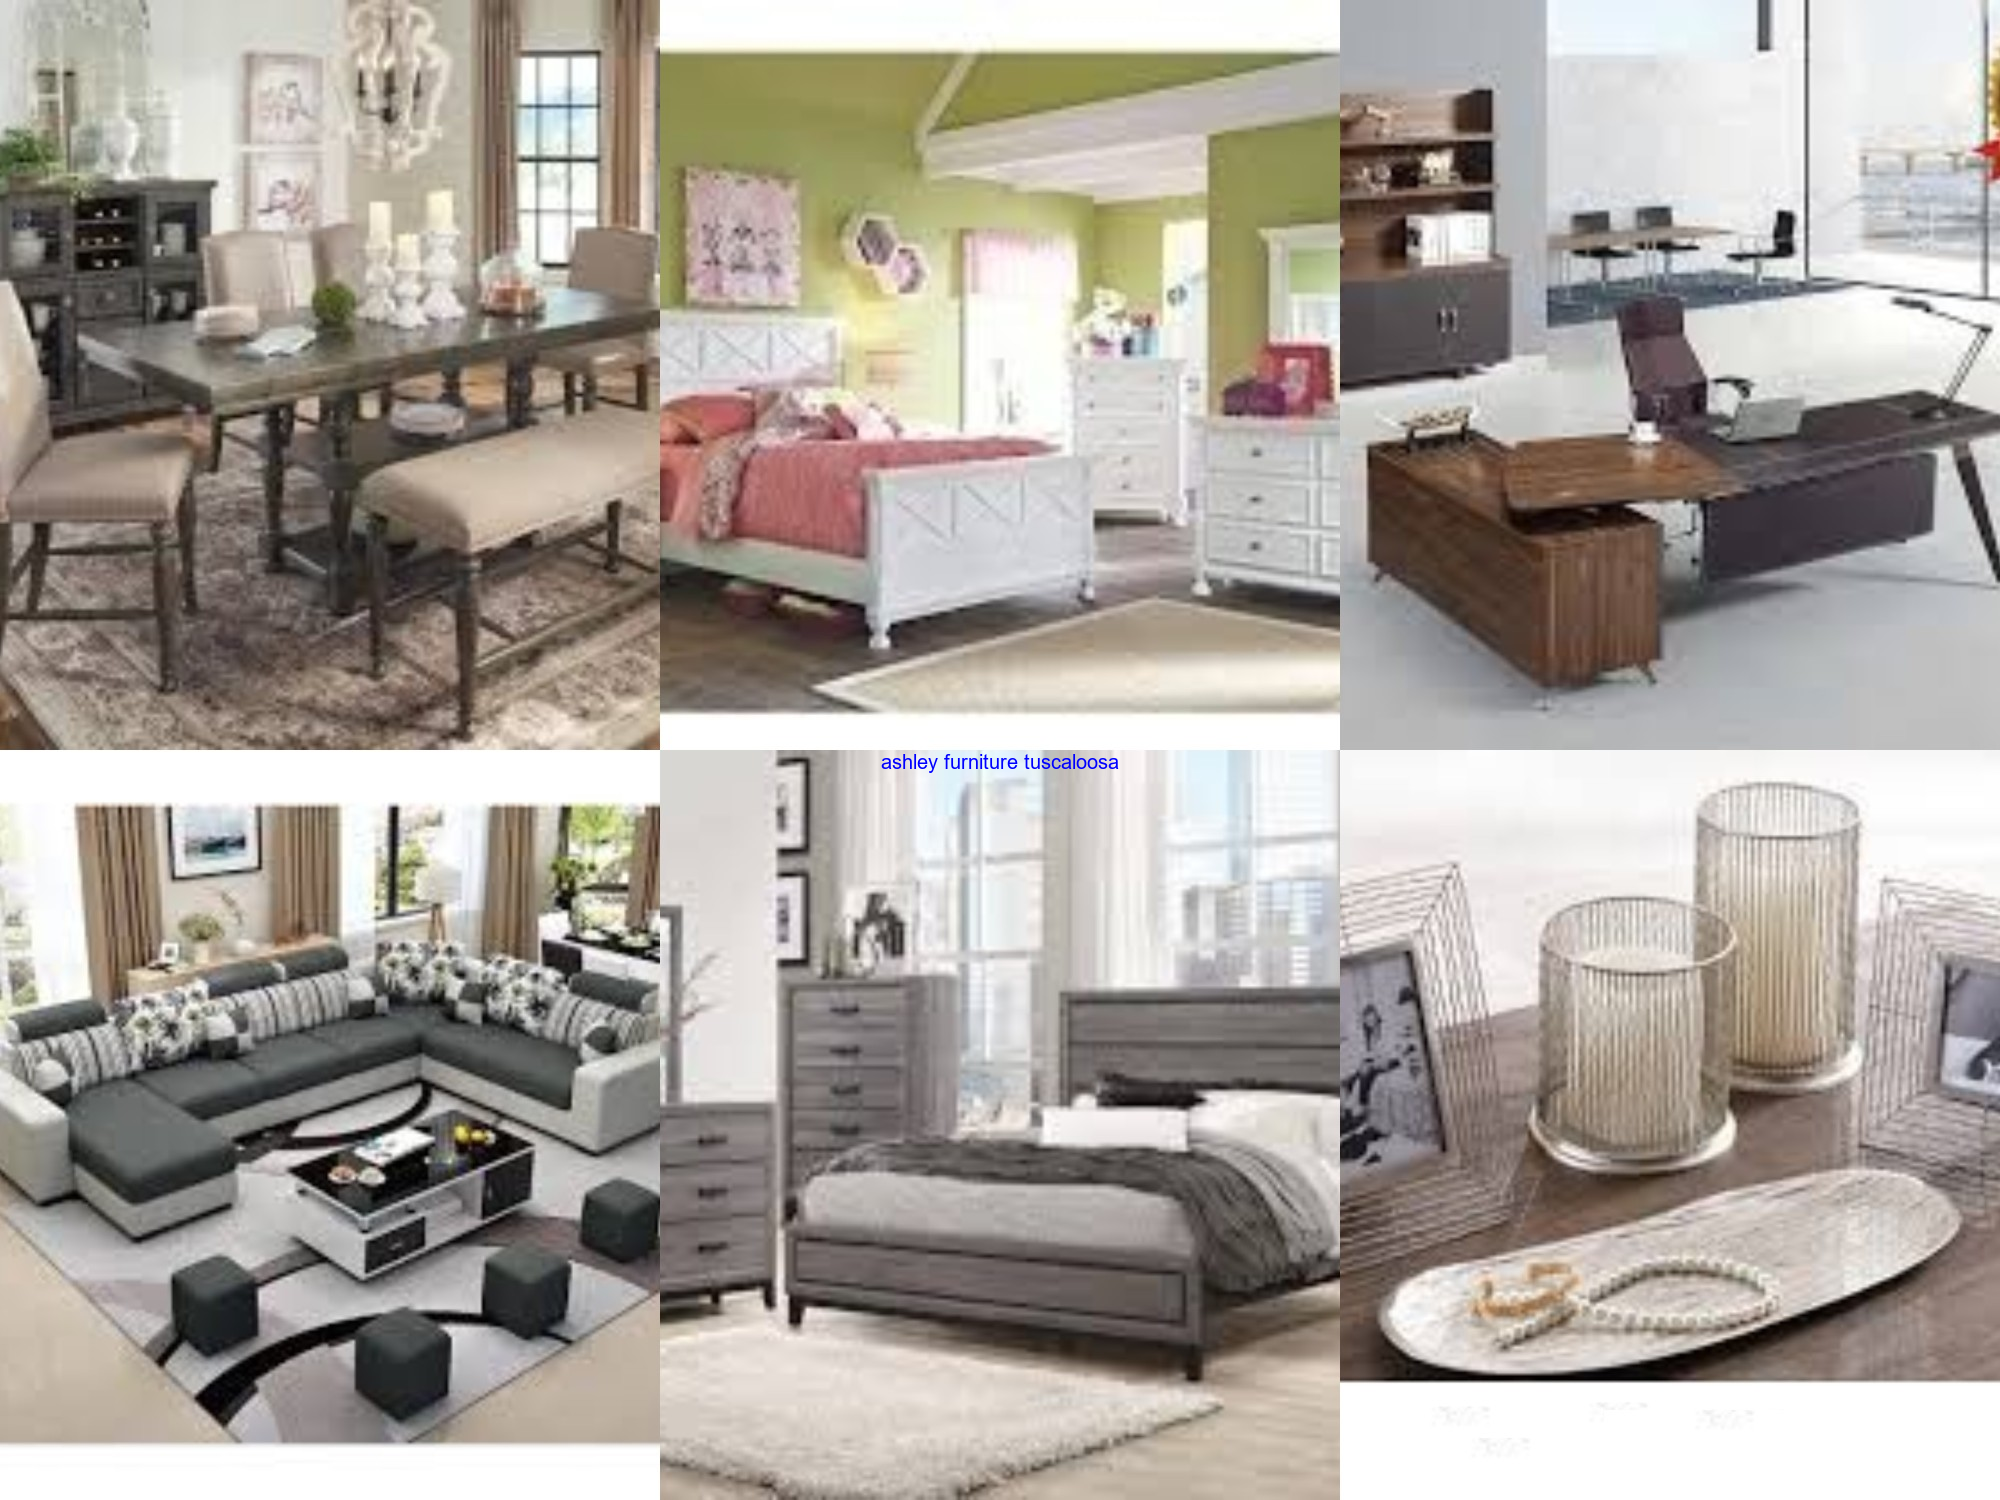 Ashley Furniture Tuscaloosa I Would Recommend That You Visit